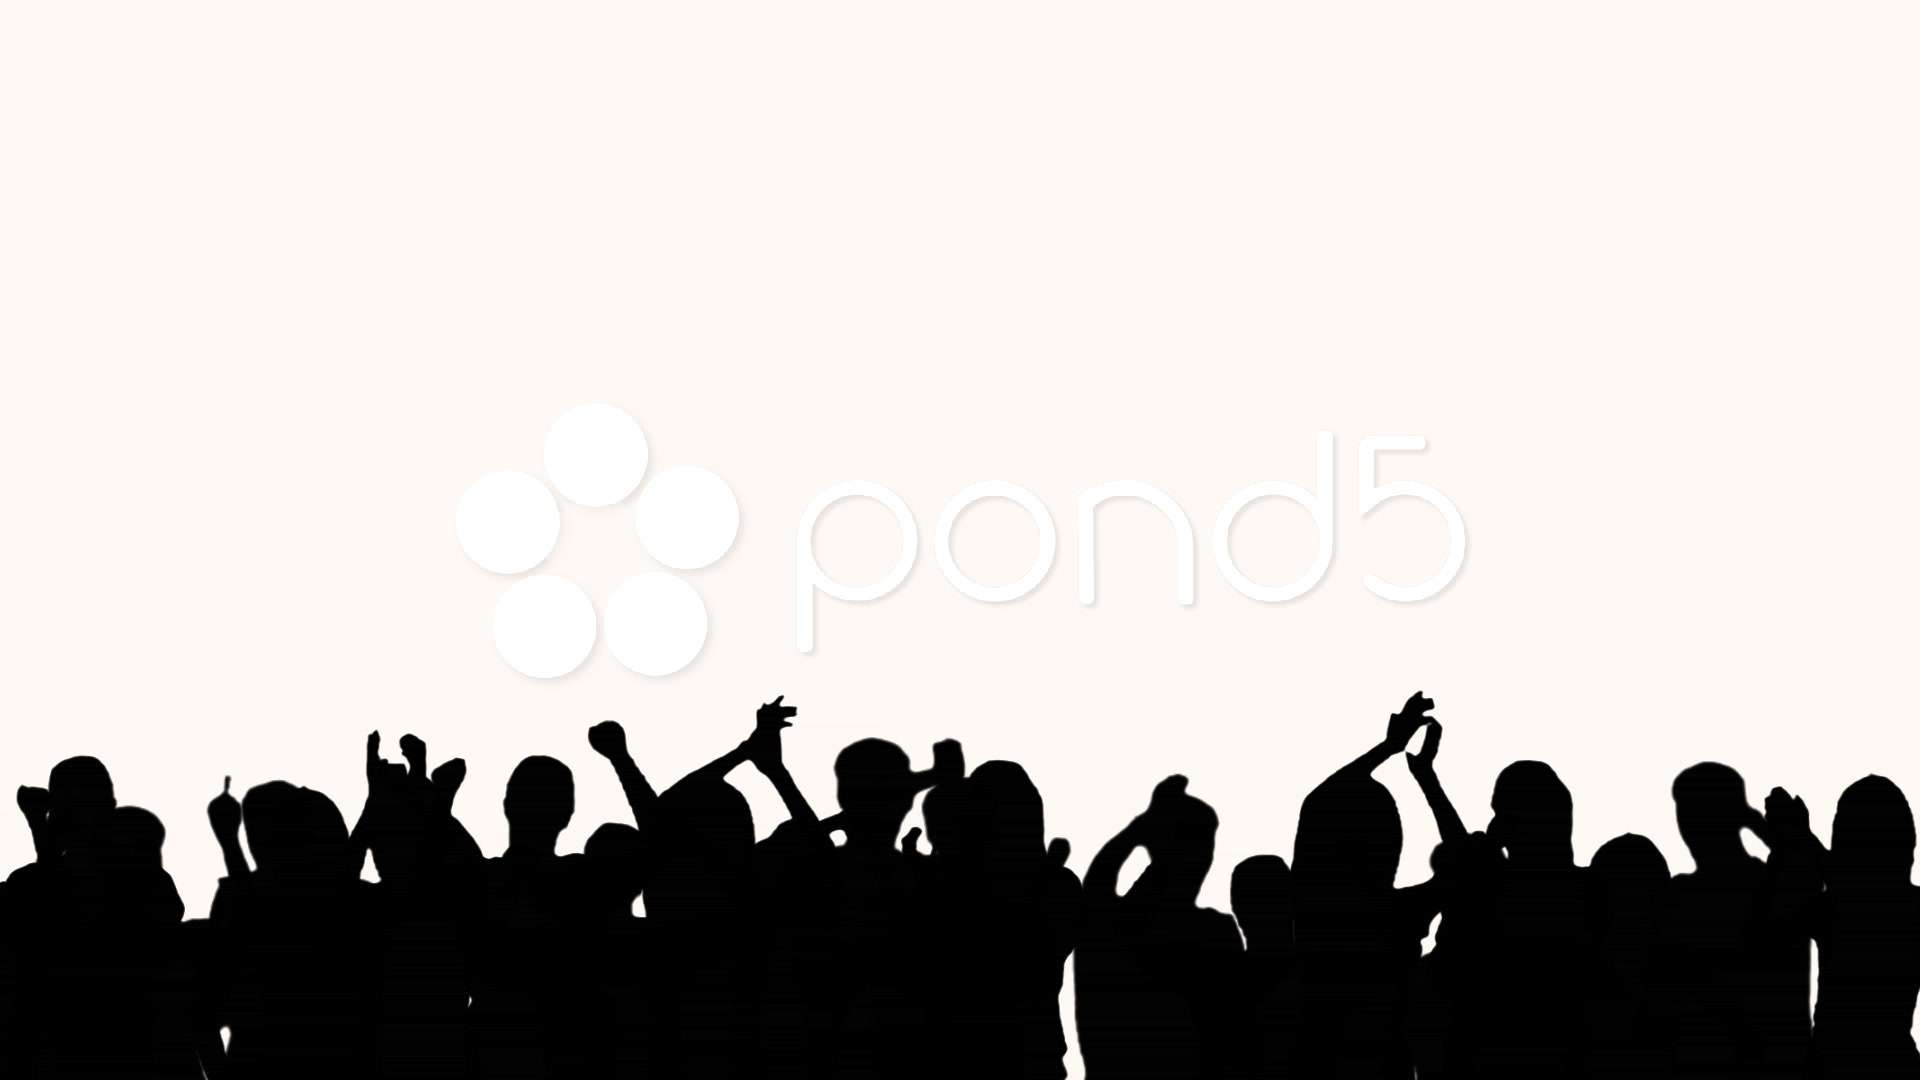 Drawn crowd Free Clipart Of Silhouette Images